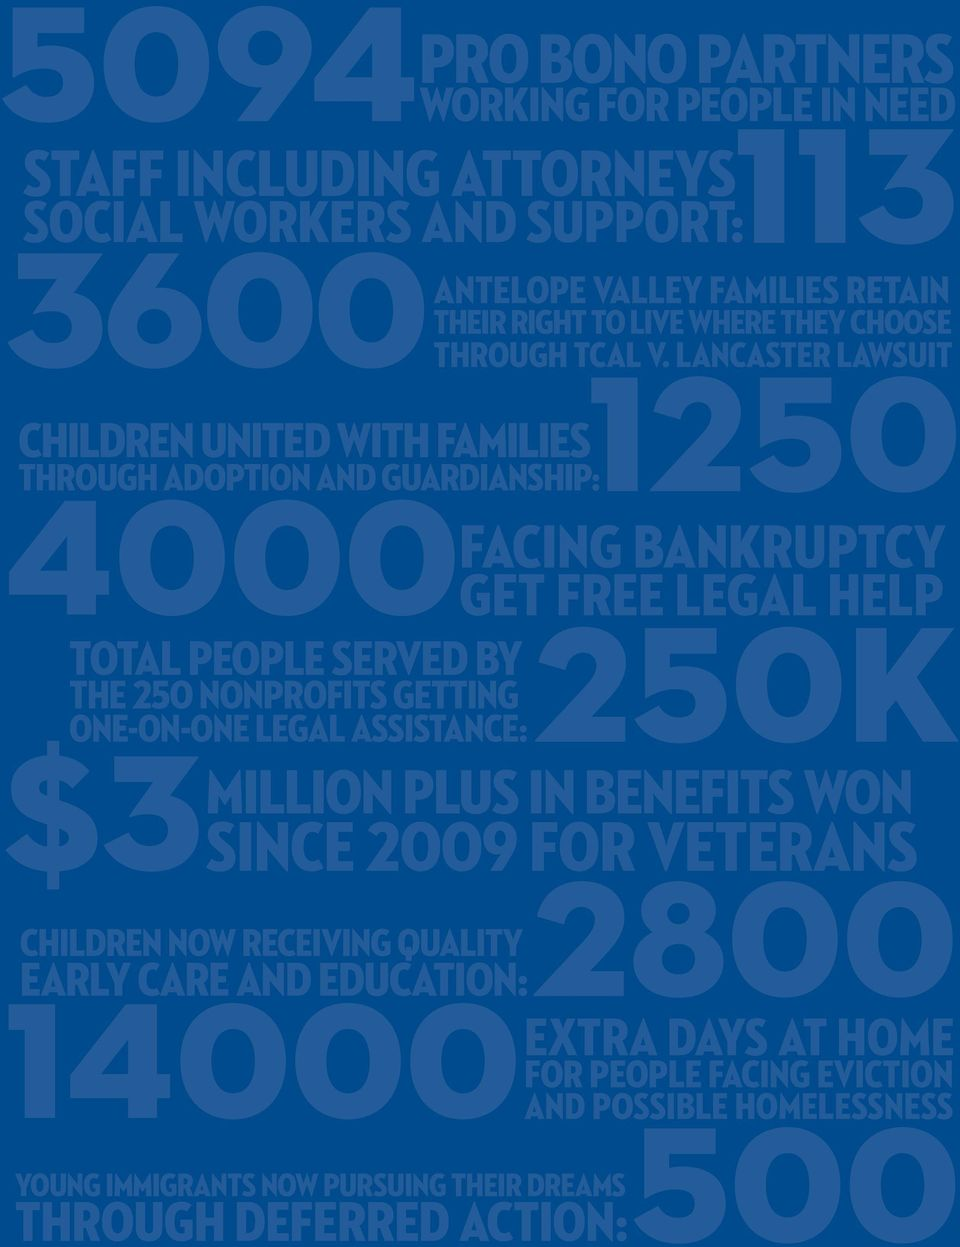 2800 early care and education: 14000Extra days at home 500 through deferred action: ONE-ON-ONE Legal ASSISTANCE: CHILDREN NOW RECEIVING quality young immigrants NOW